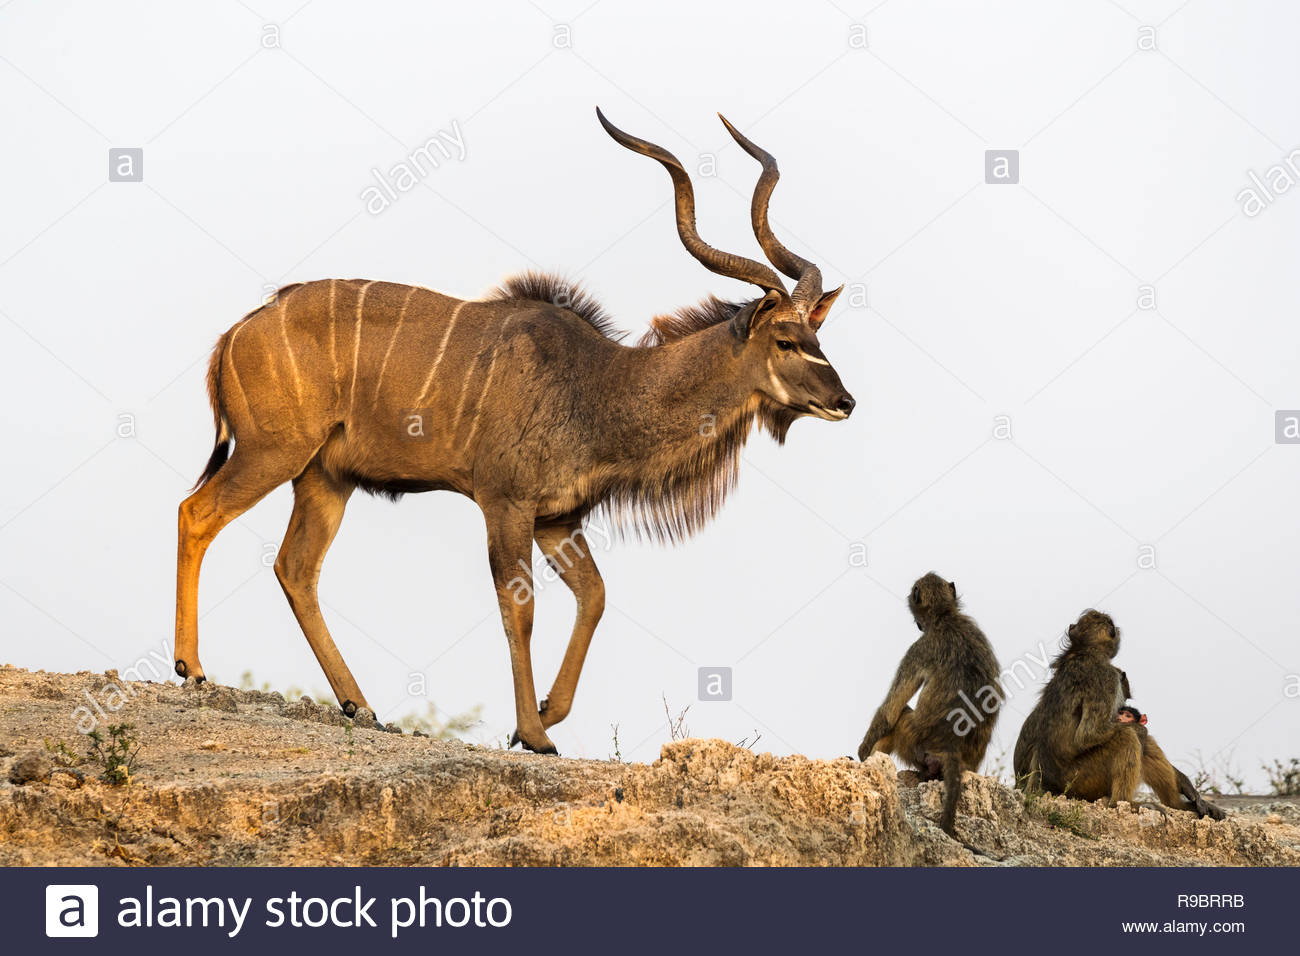 Greater kudu (Tragelaphus strepsiceros), Chobe national park, Botswana Stock Photo